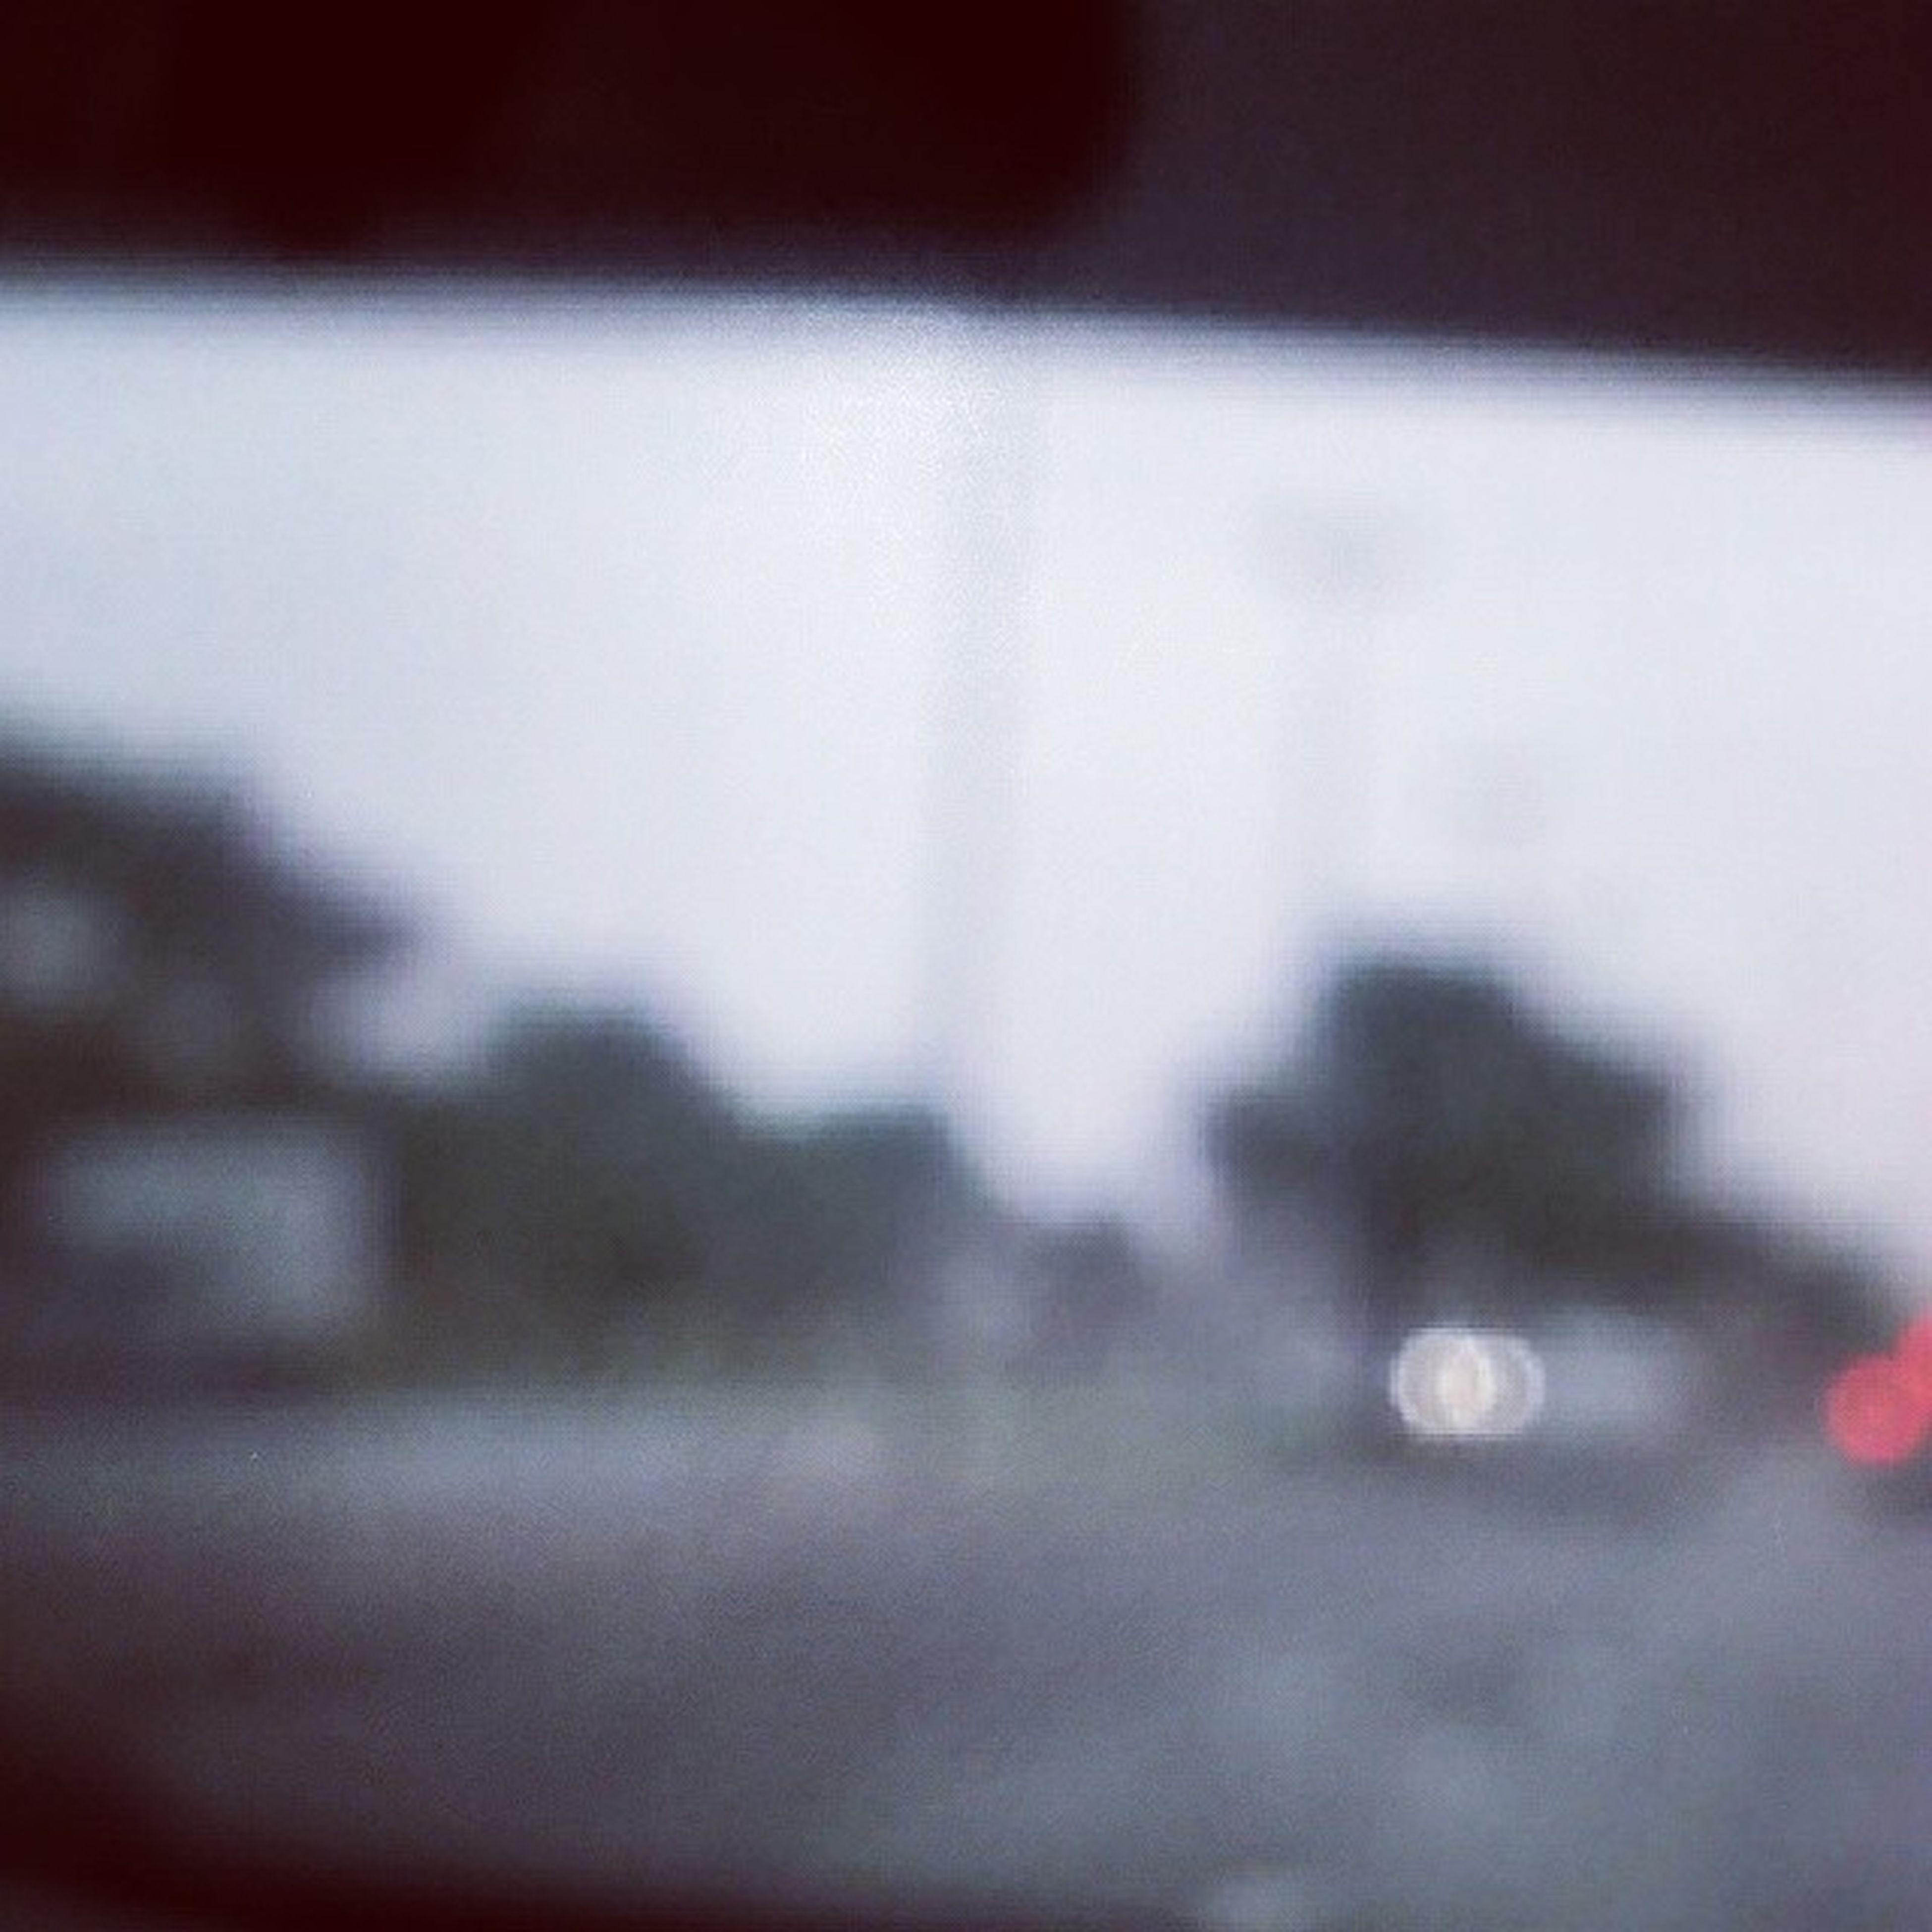 selective focus, defocused, focus on foreground, indoors, close-up, drop, surface level, window, blurred, built structure, wet, rain, architecture, no people, weather, day, dusk, building exterior, glass - material